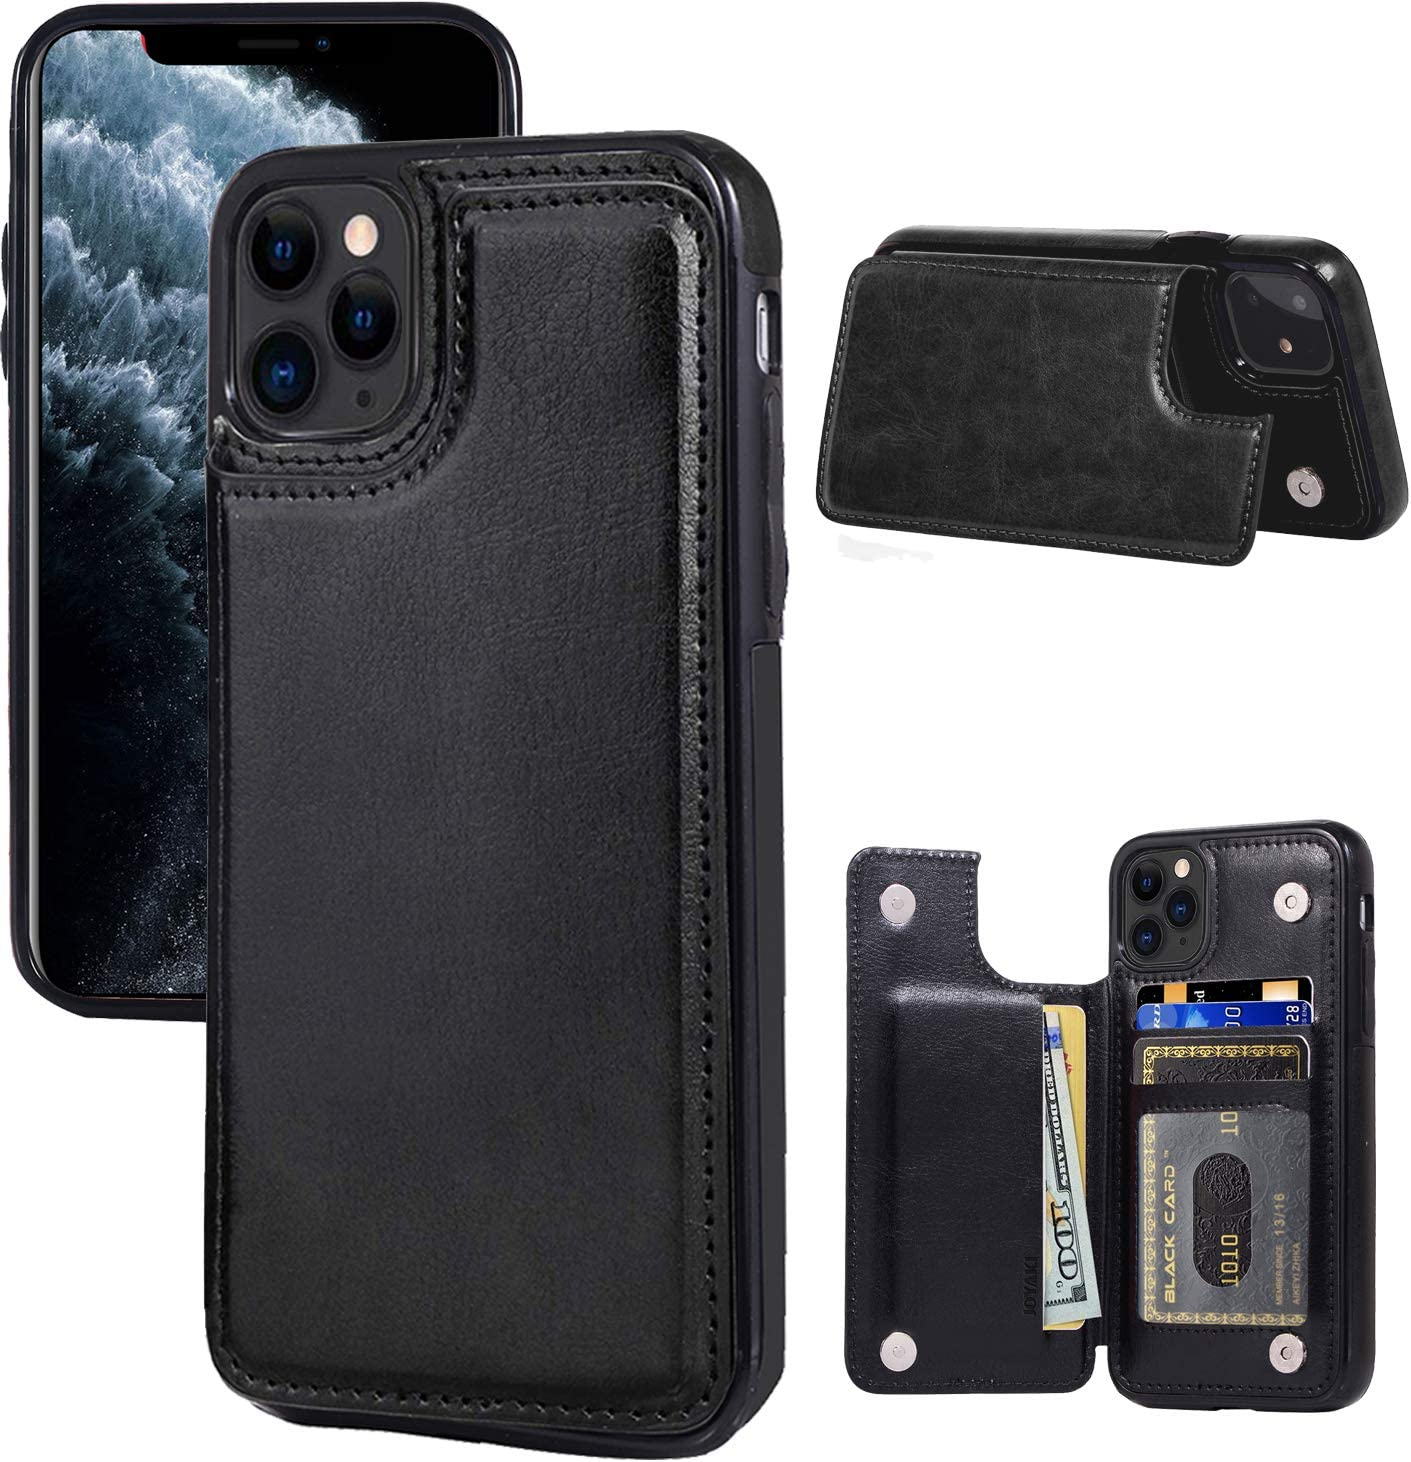 """JOYAKI iPhone 11 Pro Wallet Case with Card Holder,Premium PU Leather Kickstand Card Slots Case with a Screan Protector,Double Magnetic Clasp and Shockproof Cover for iPhone 11 Pro(5.8"""")-Black"""